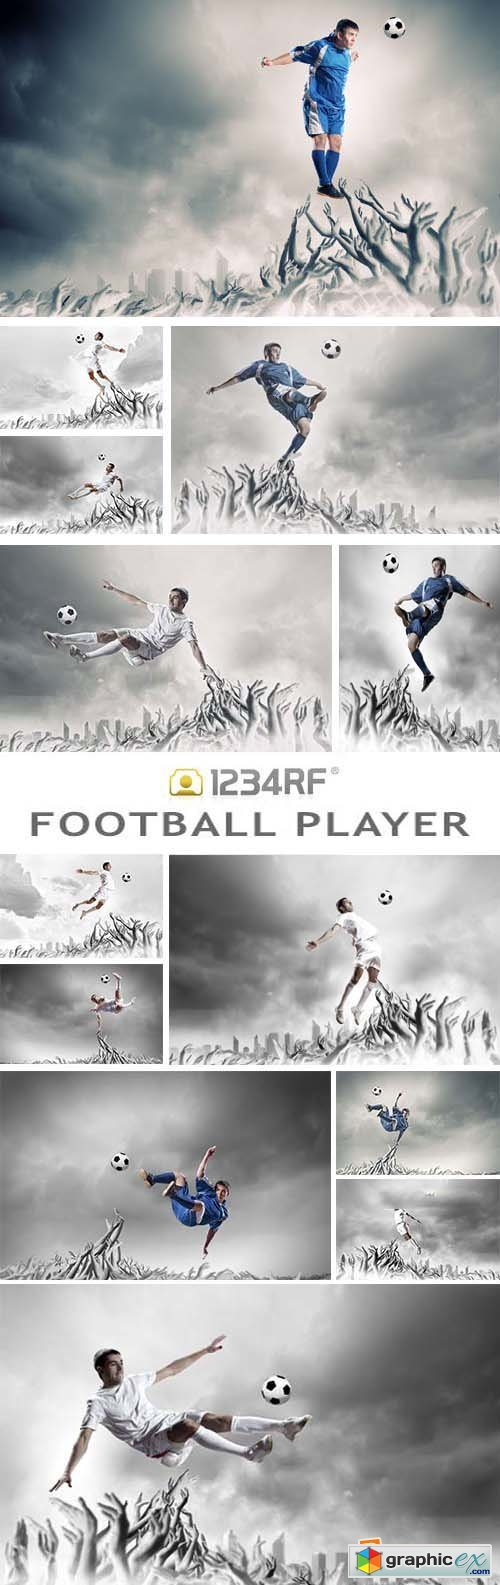 Football Player In Jump - 26xJPG